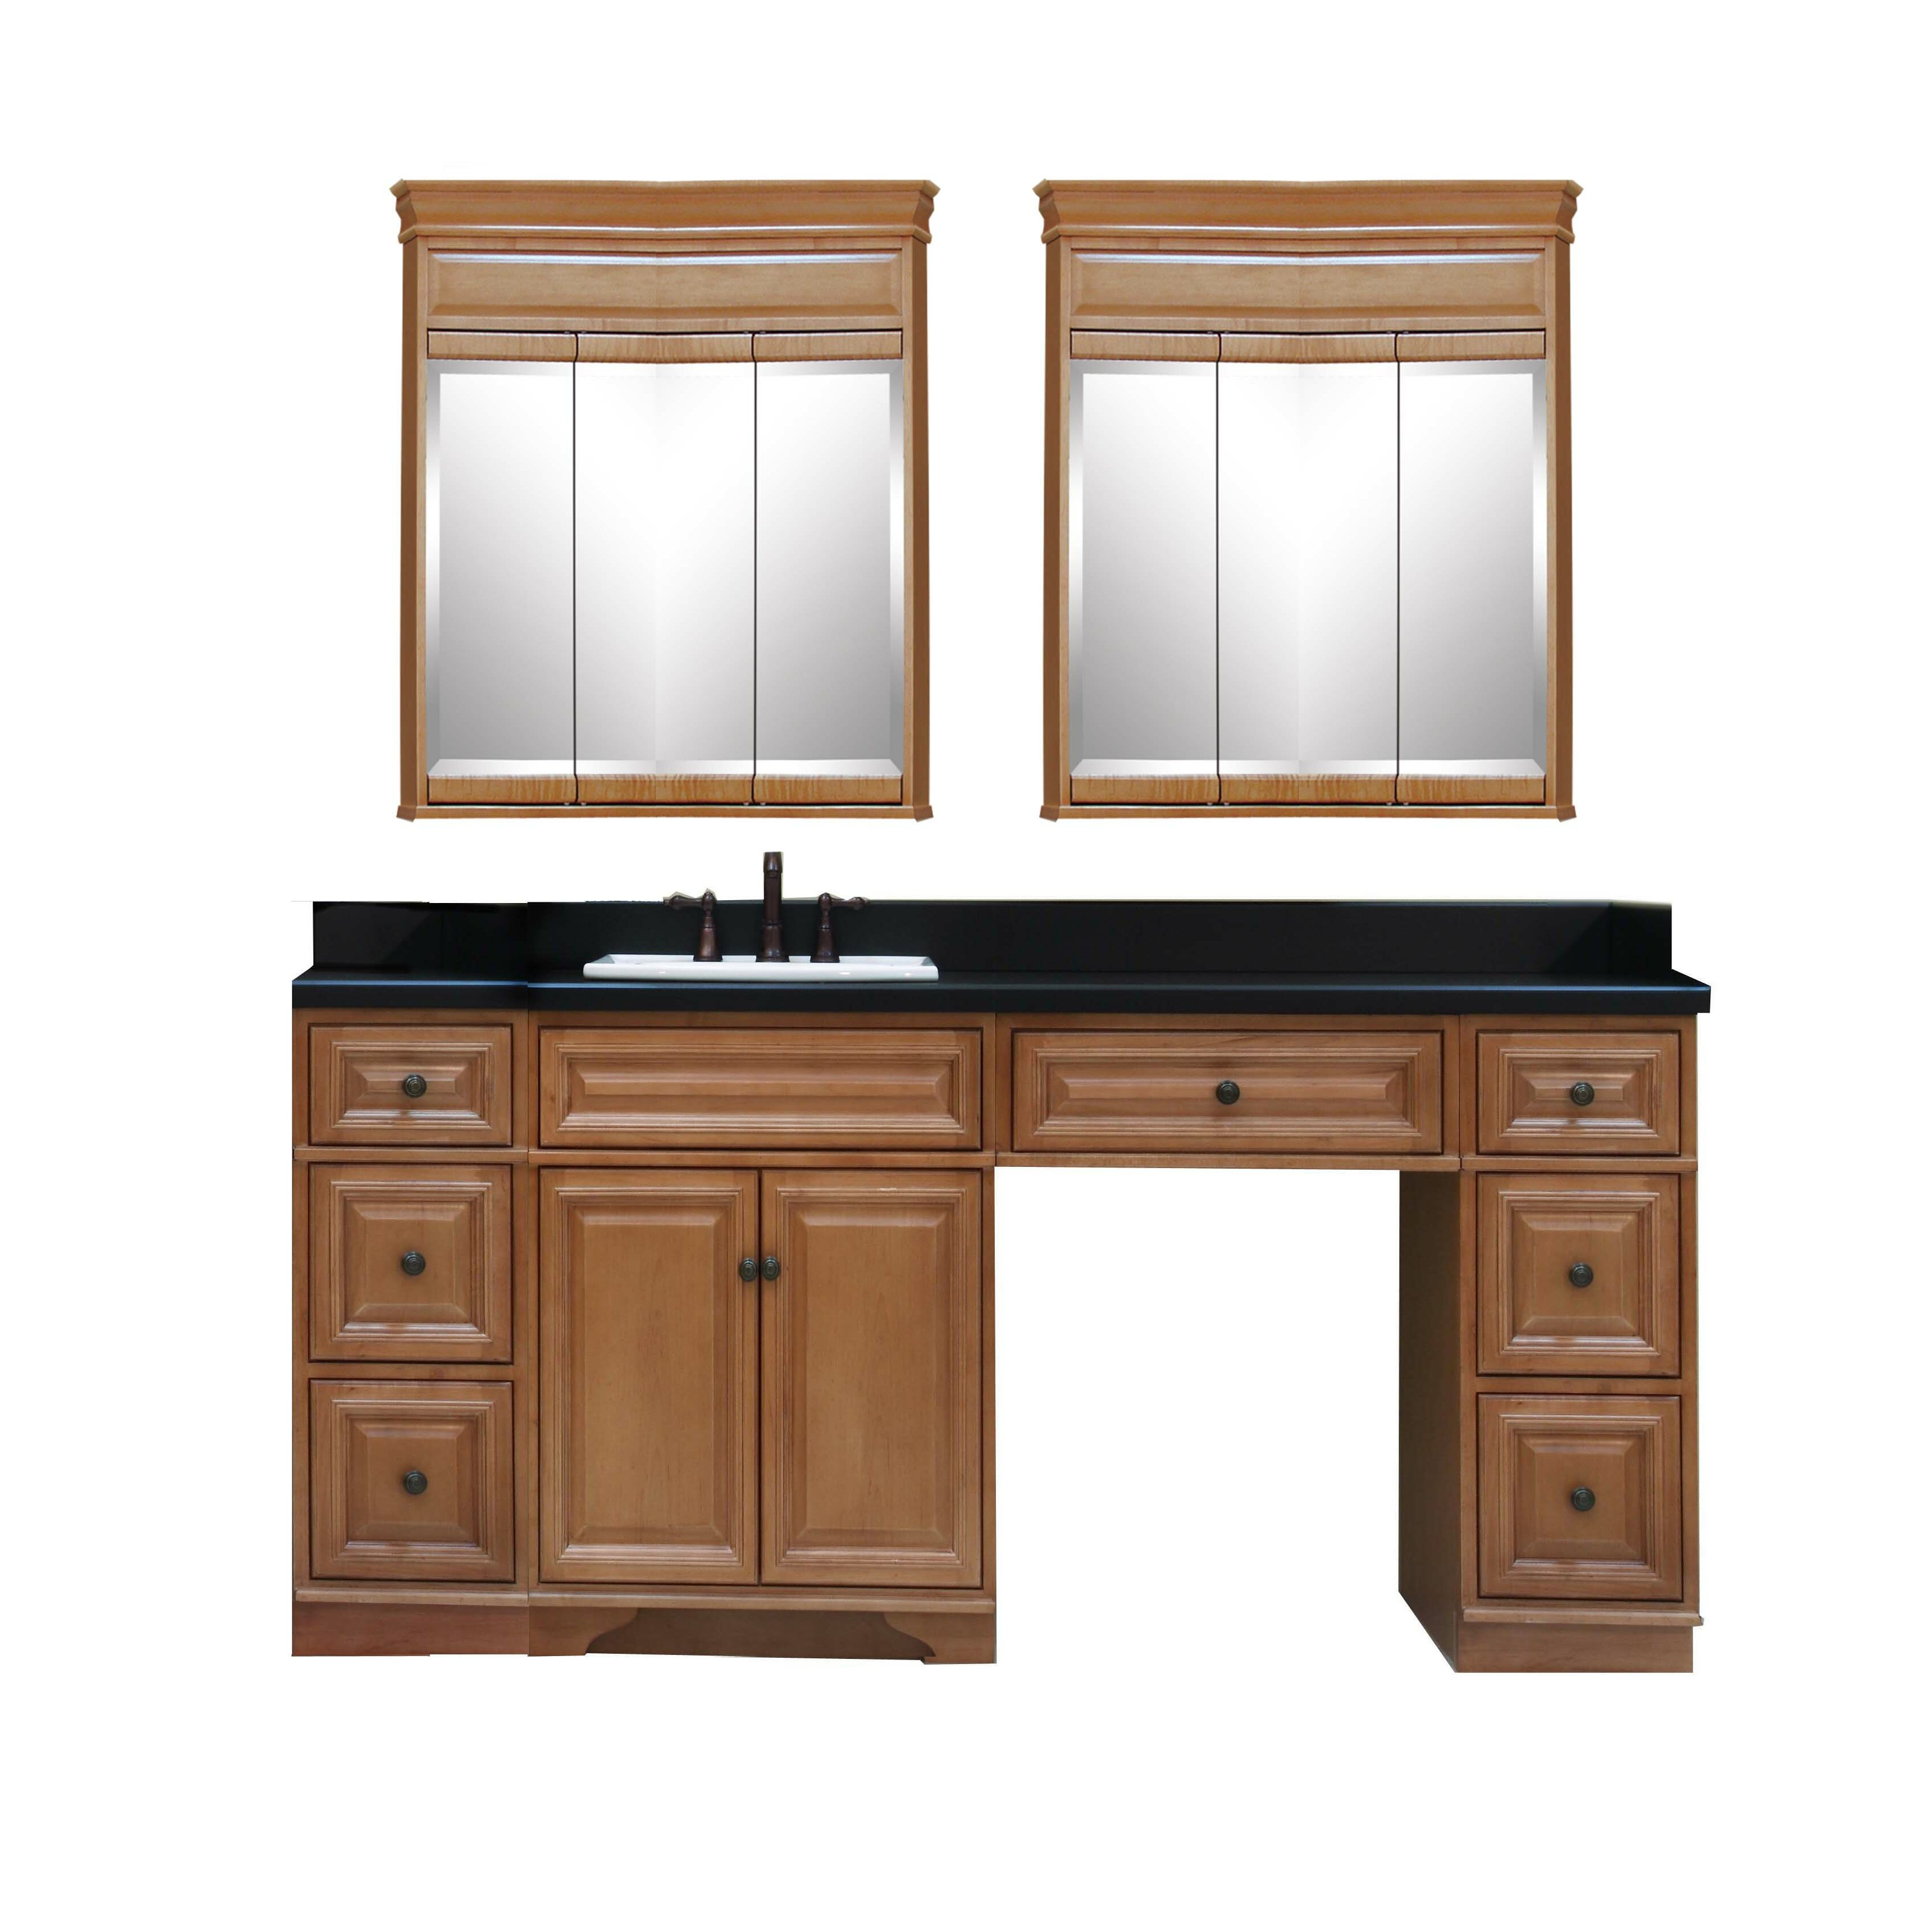 sunnywood kitchen cabinets monsterlune sunnywood kitchen cabinets kitchen best storage and